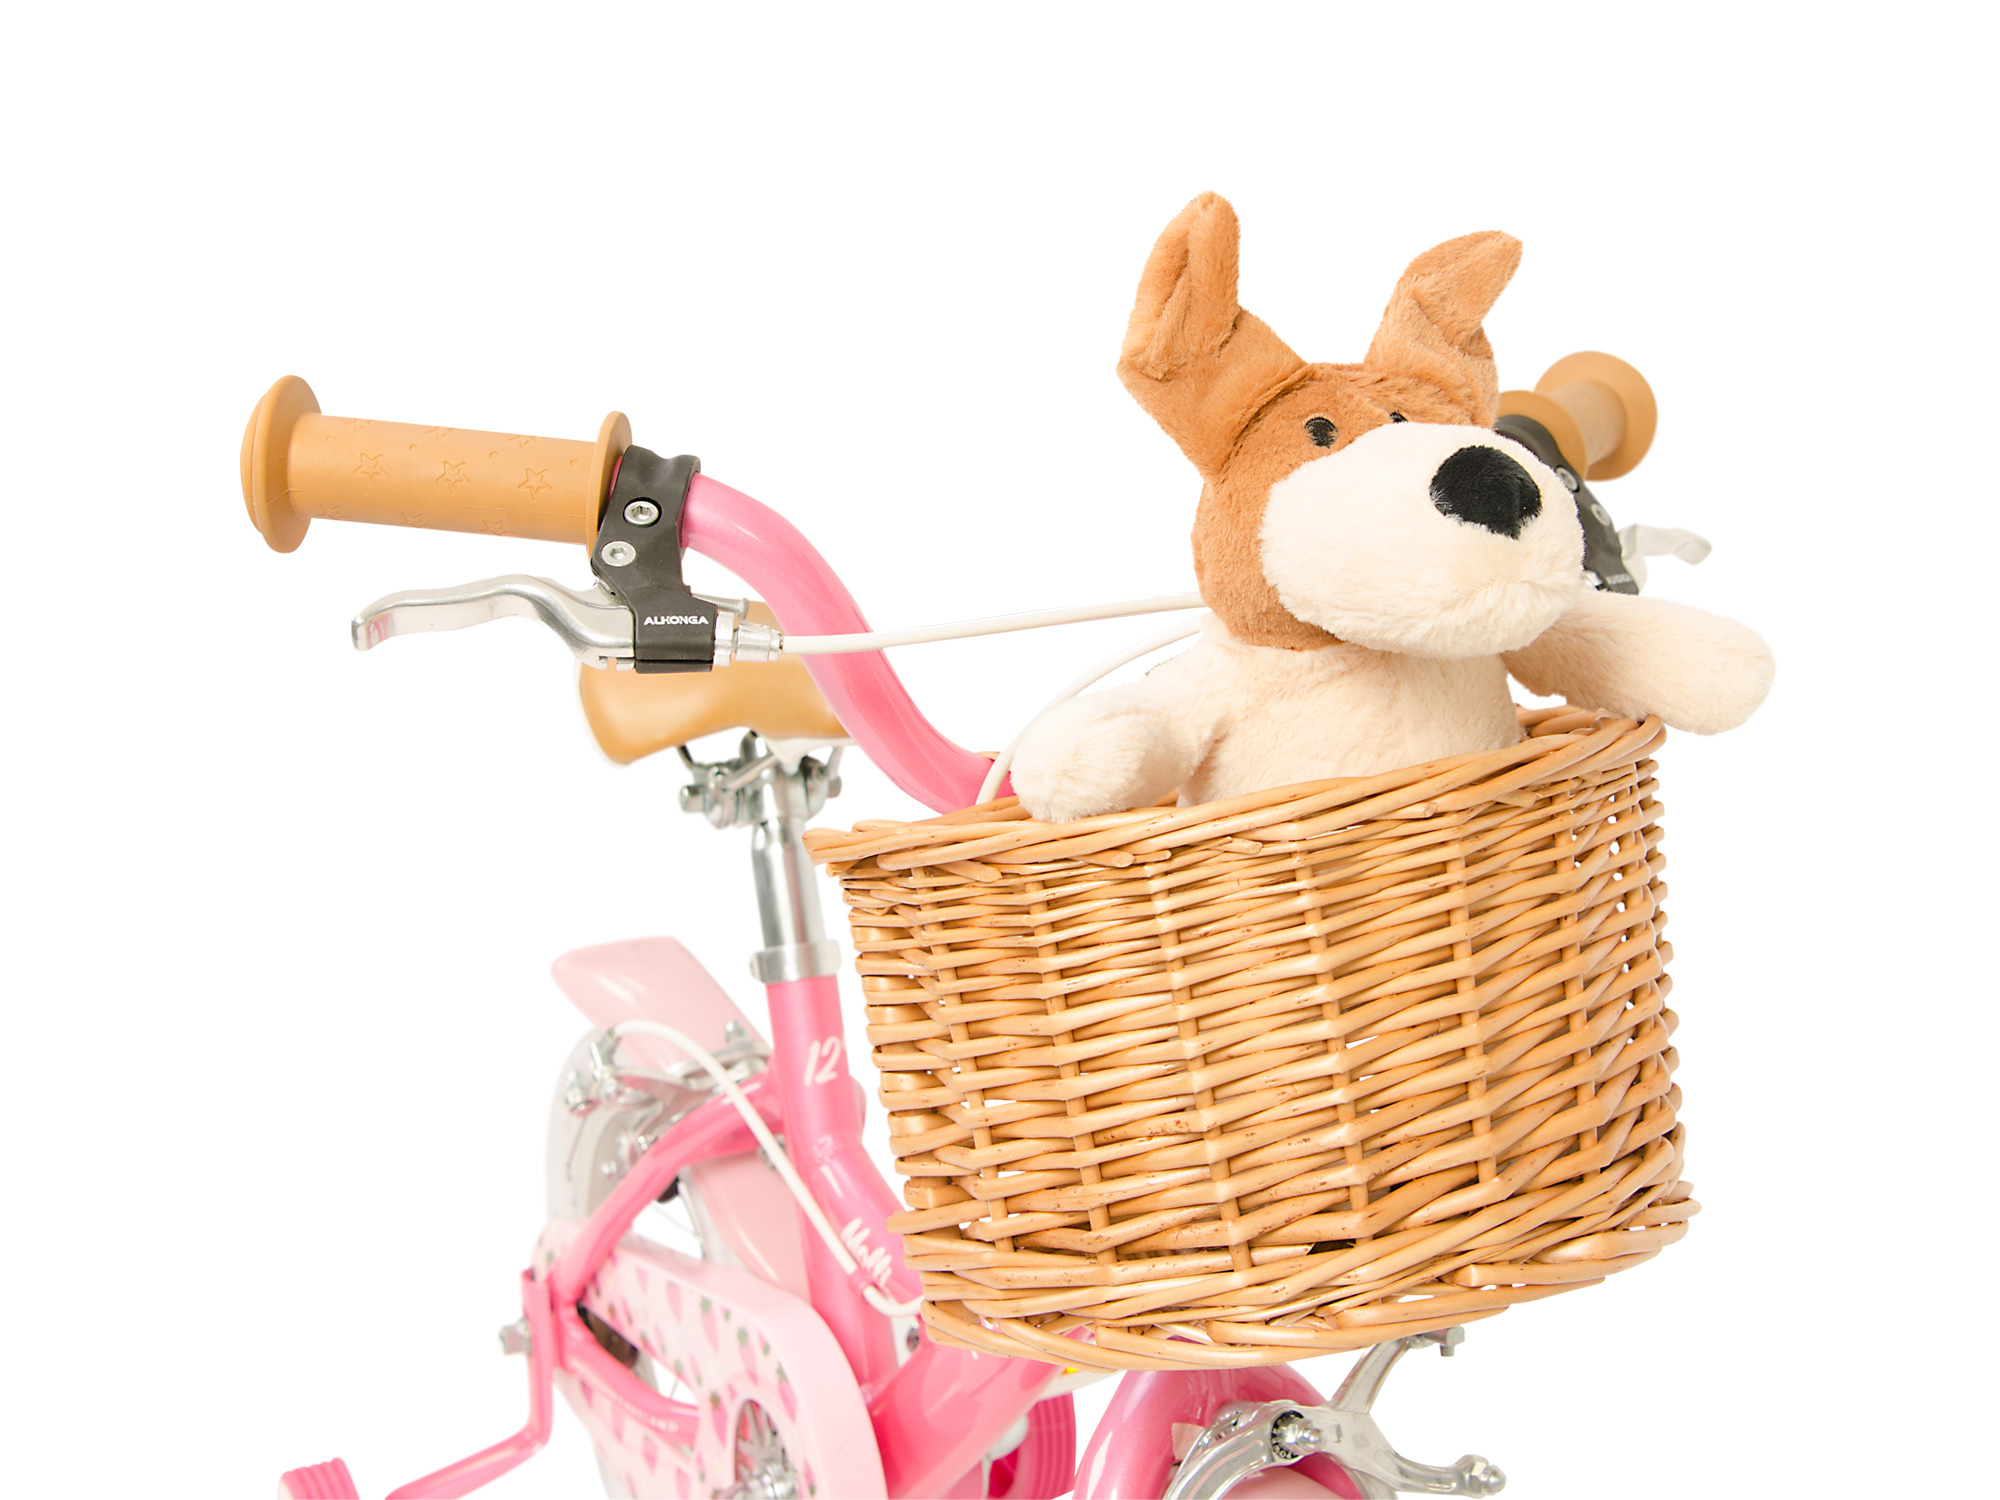 Raleigh Molli Pink Handlebars view from front